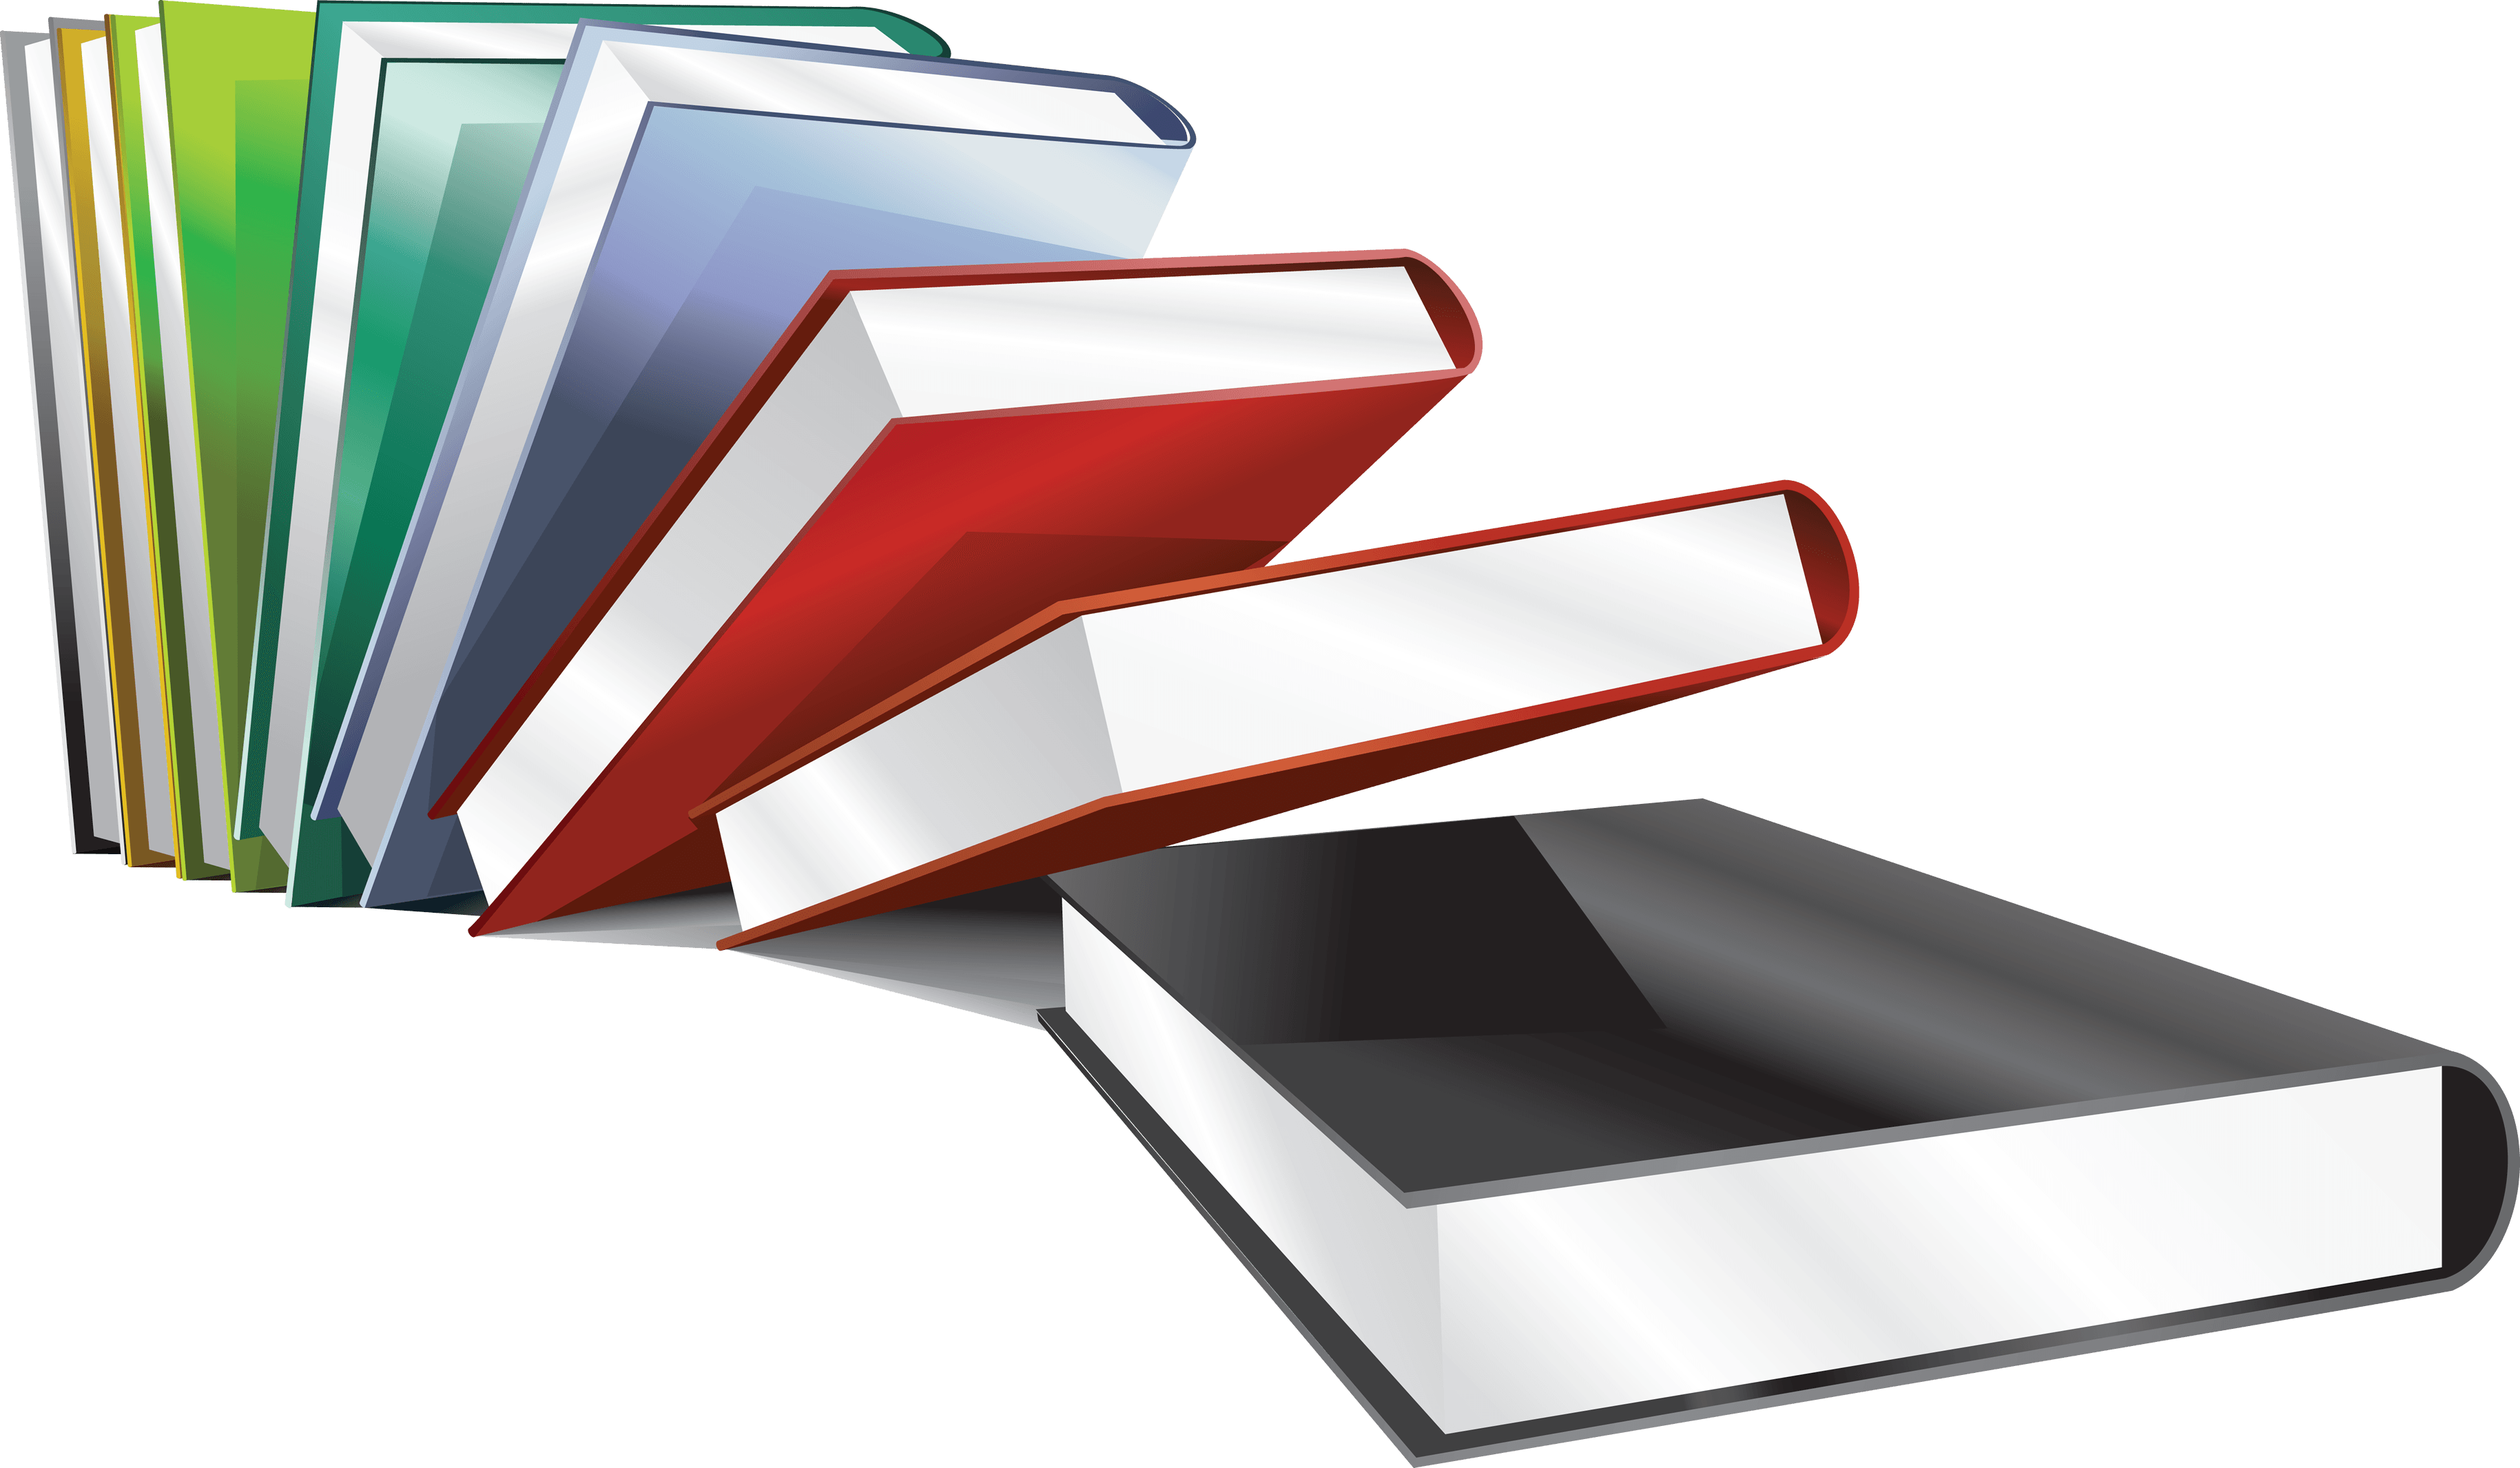 Books clipart png. Image with transparency